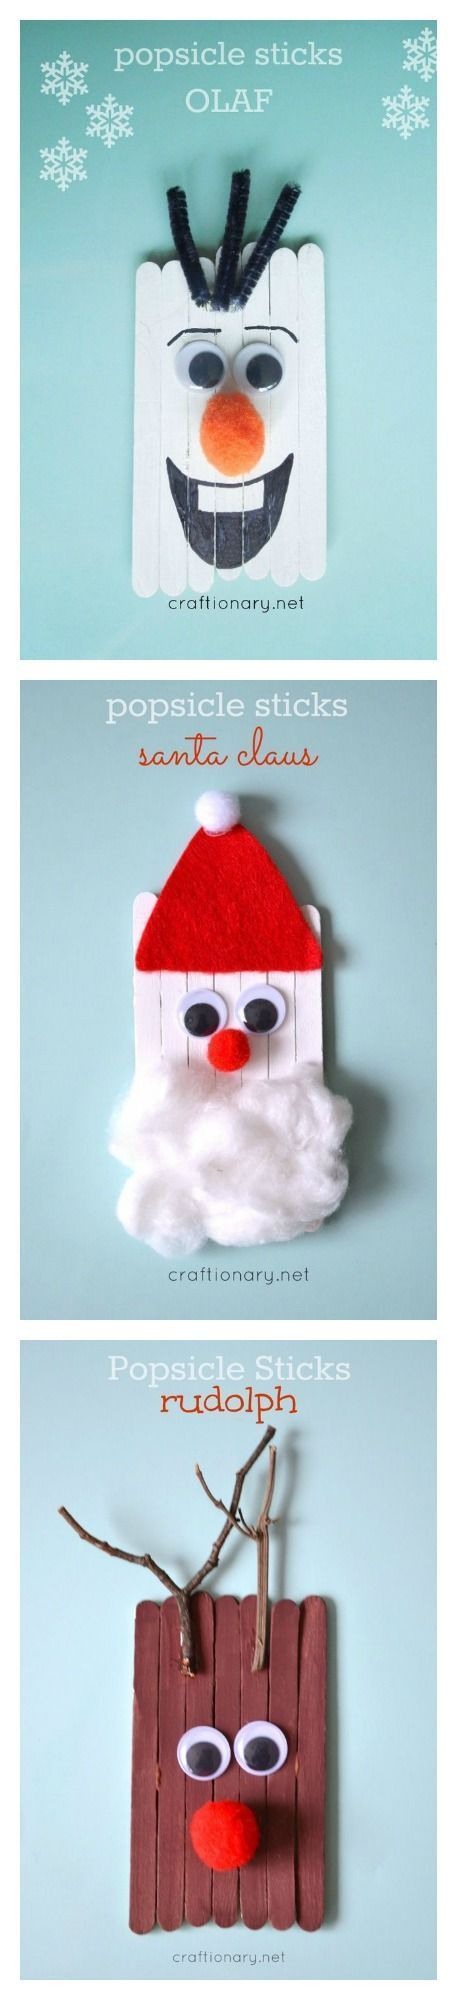 Popsicle stick kids crafts for Christmas